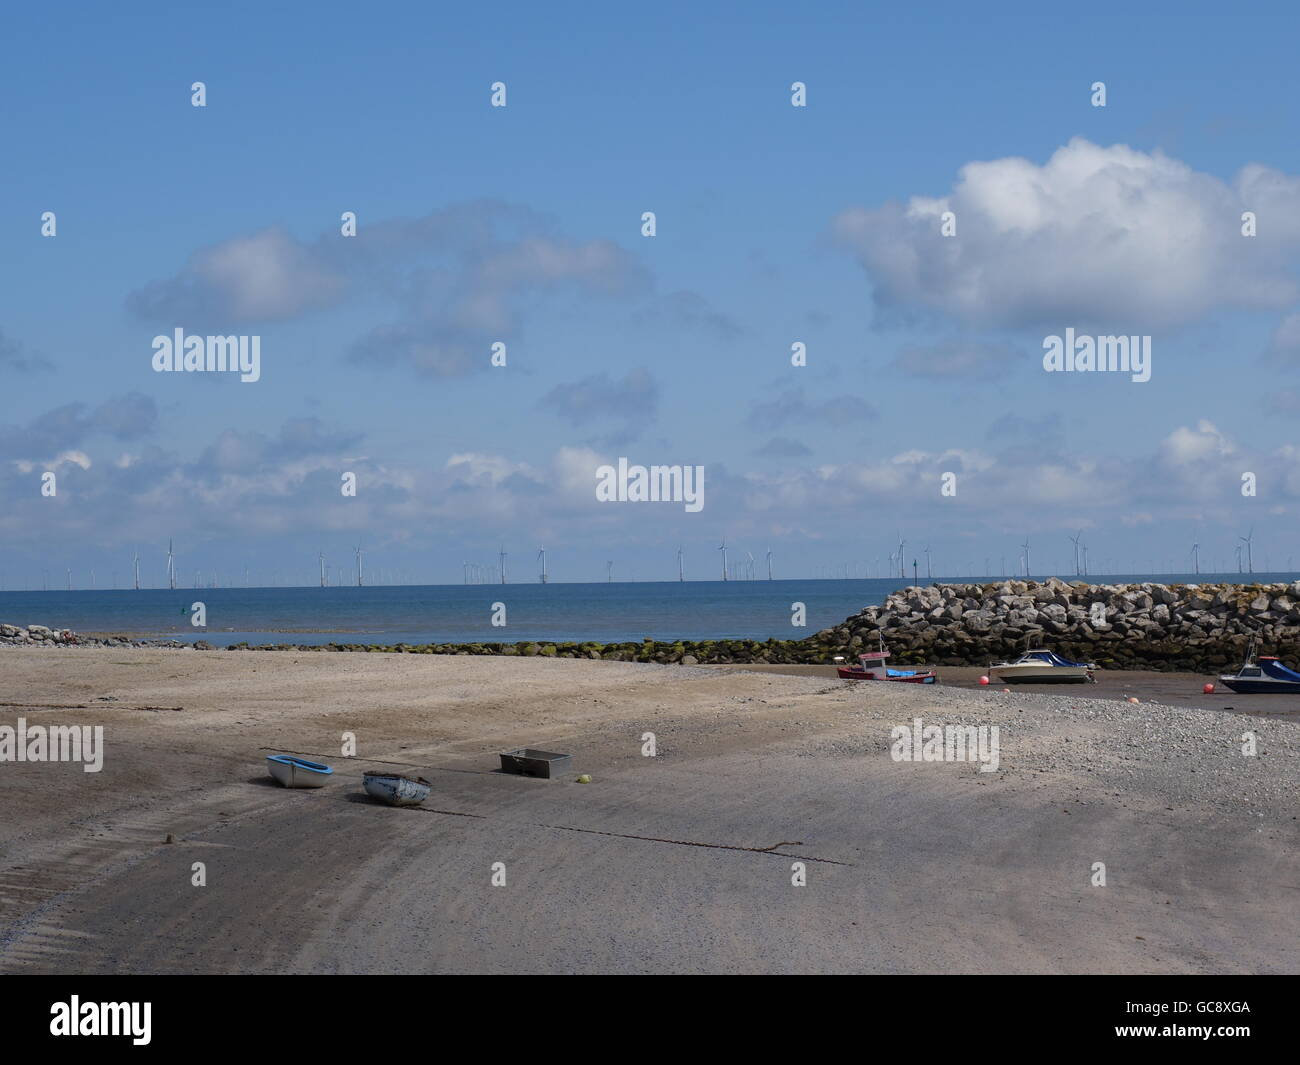 A beach in wales on a sunny day - Stock Image